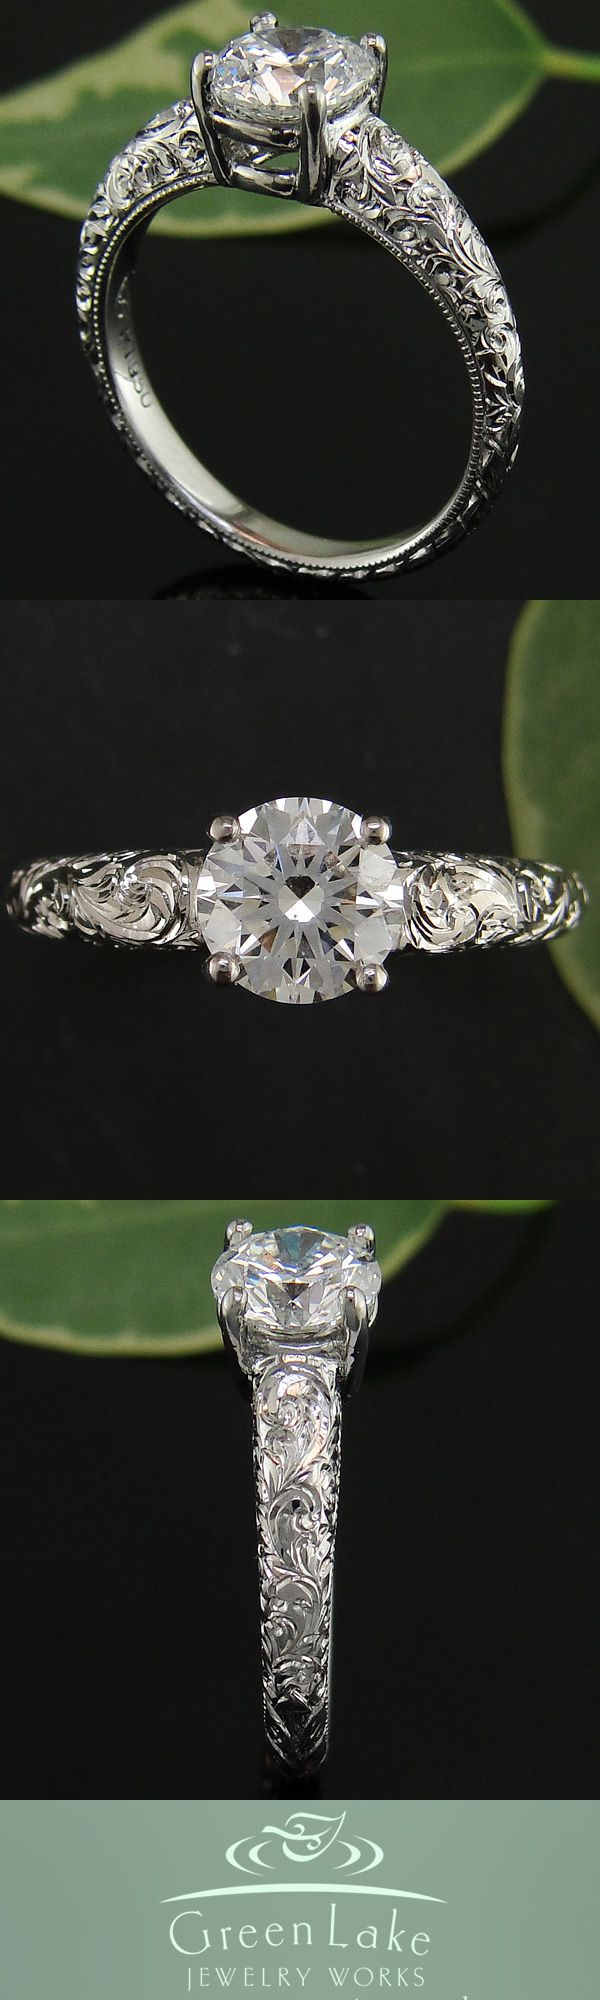 Hand engraved platinum ring with brilliant-cut center diamond.